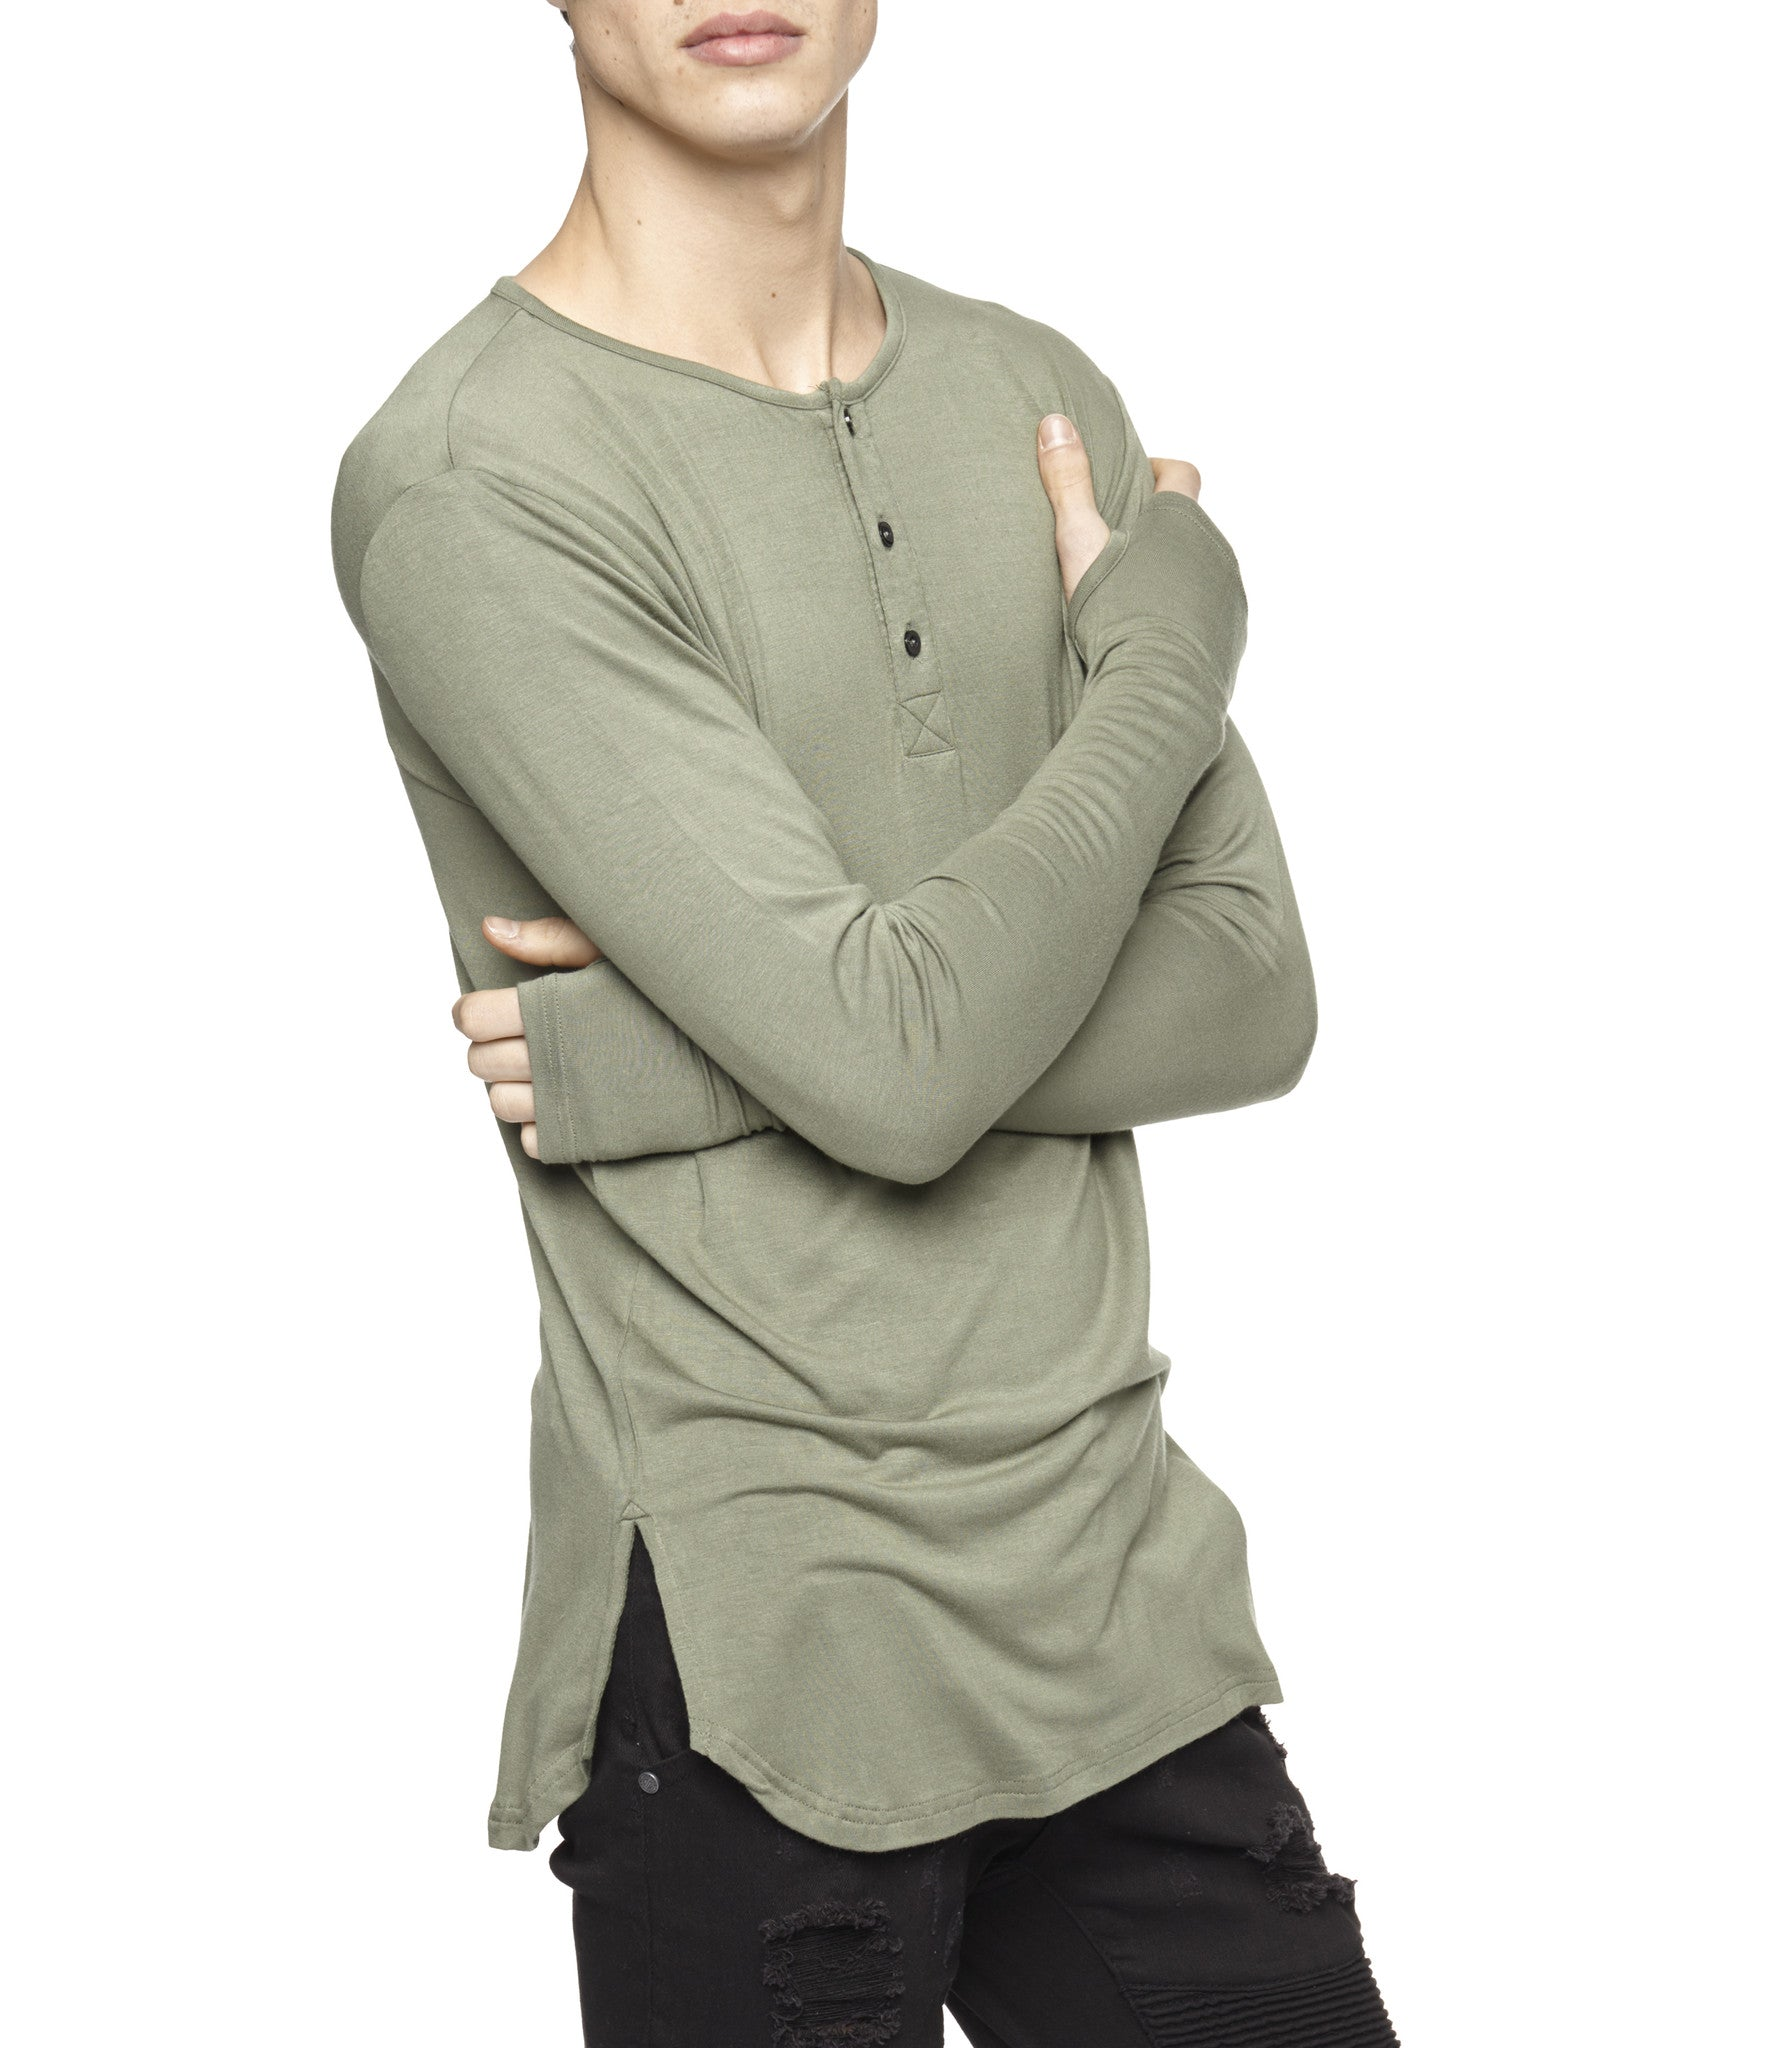 LS264 Under Layer Henley Tee - Khaki - underated london - underatedco - 6